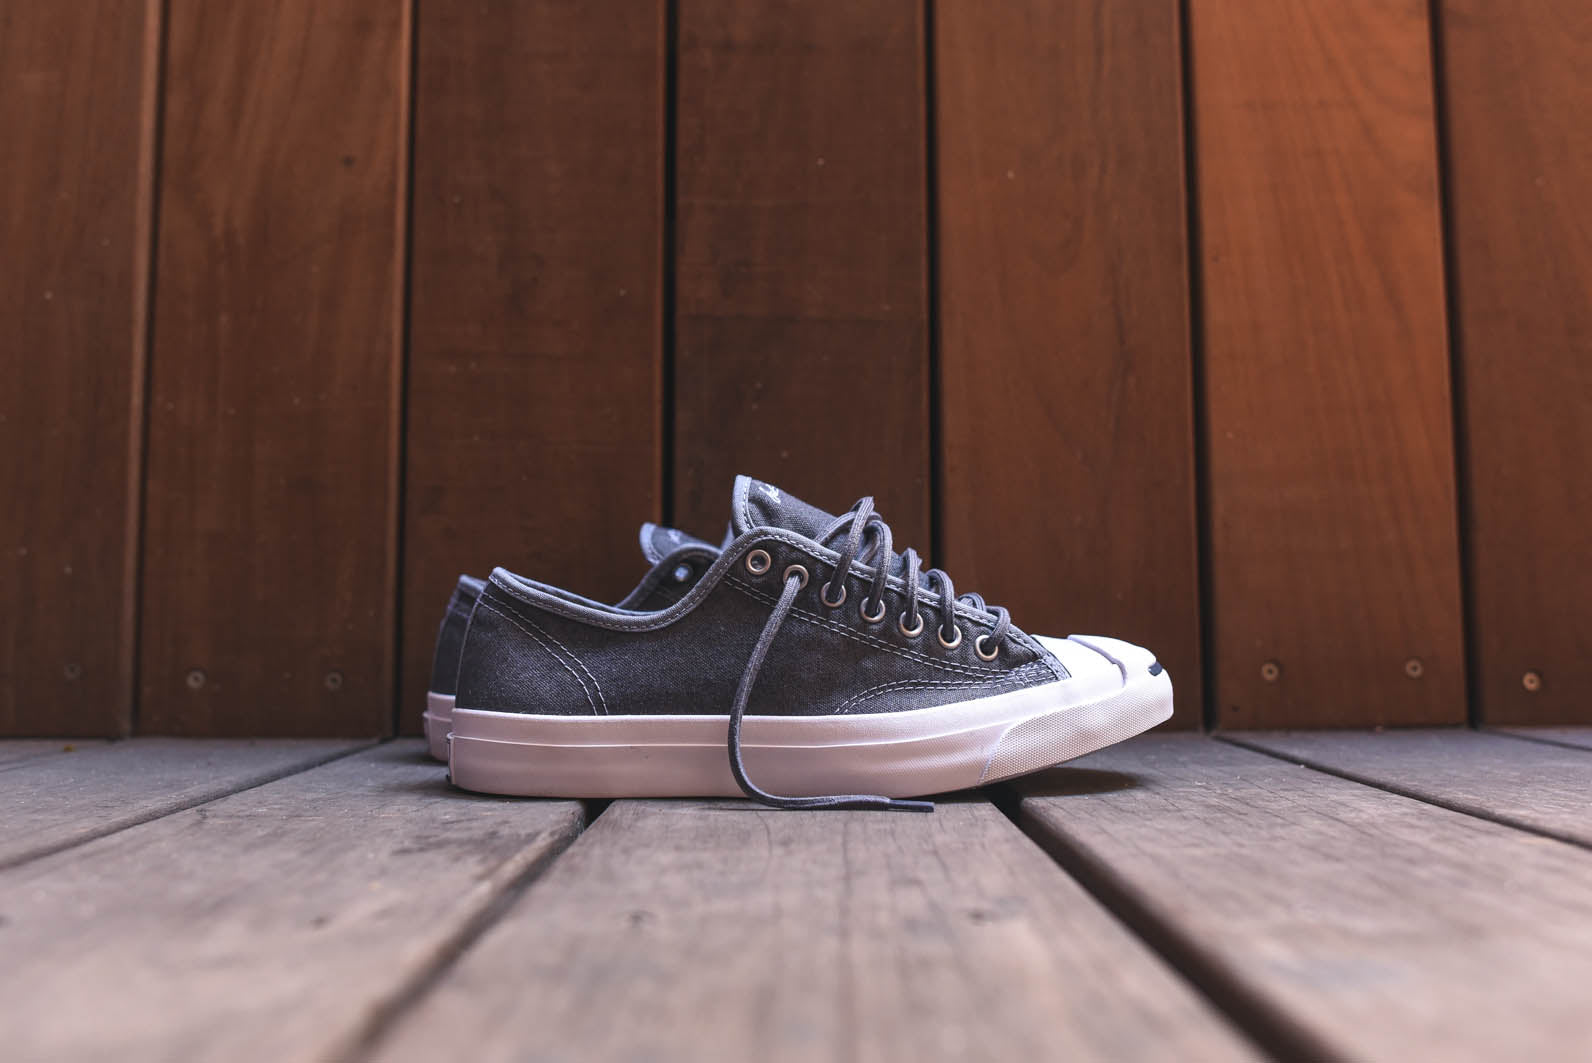 df6c089cf17a The tried-and-true Jack Purcell receives a new material treatment. Opposed  to the typical canvas upper